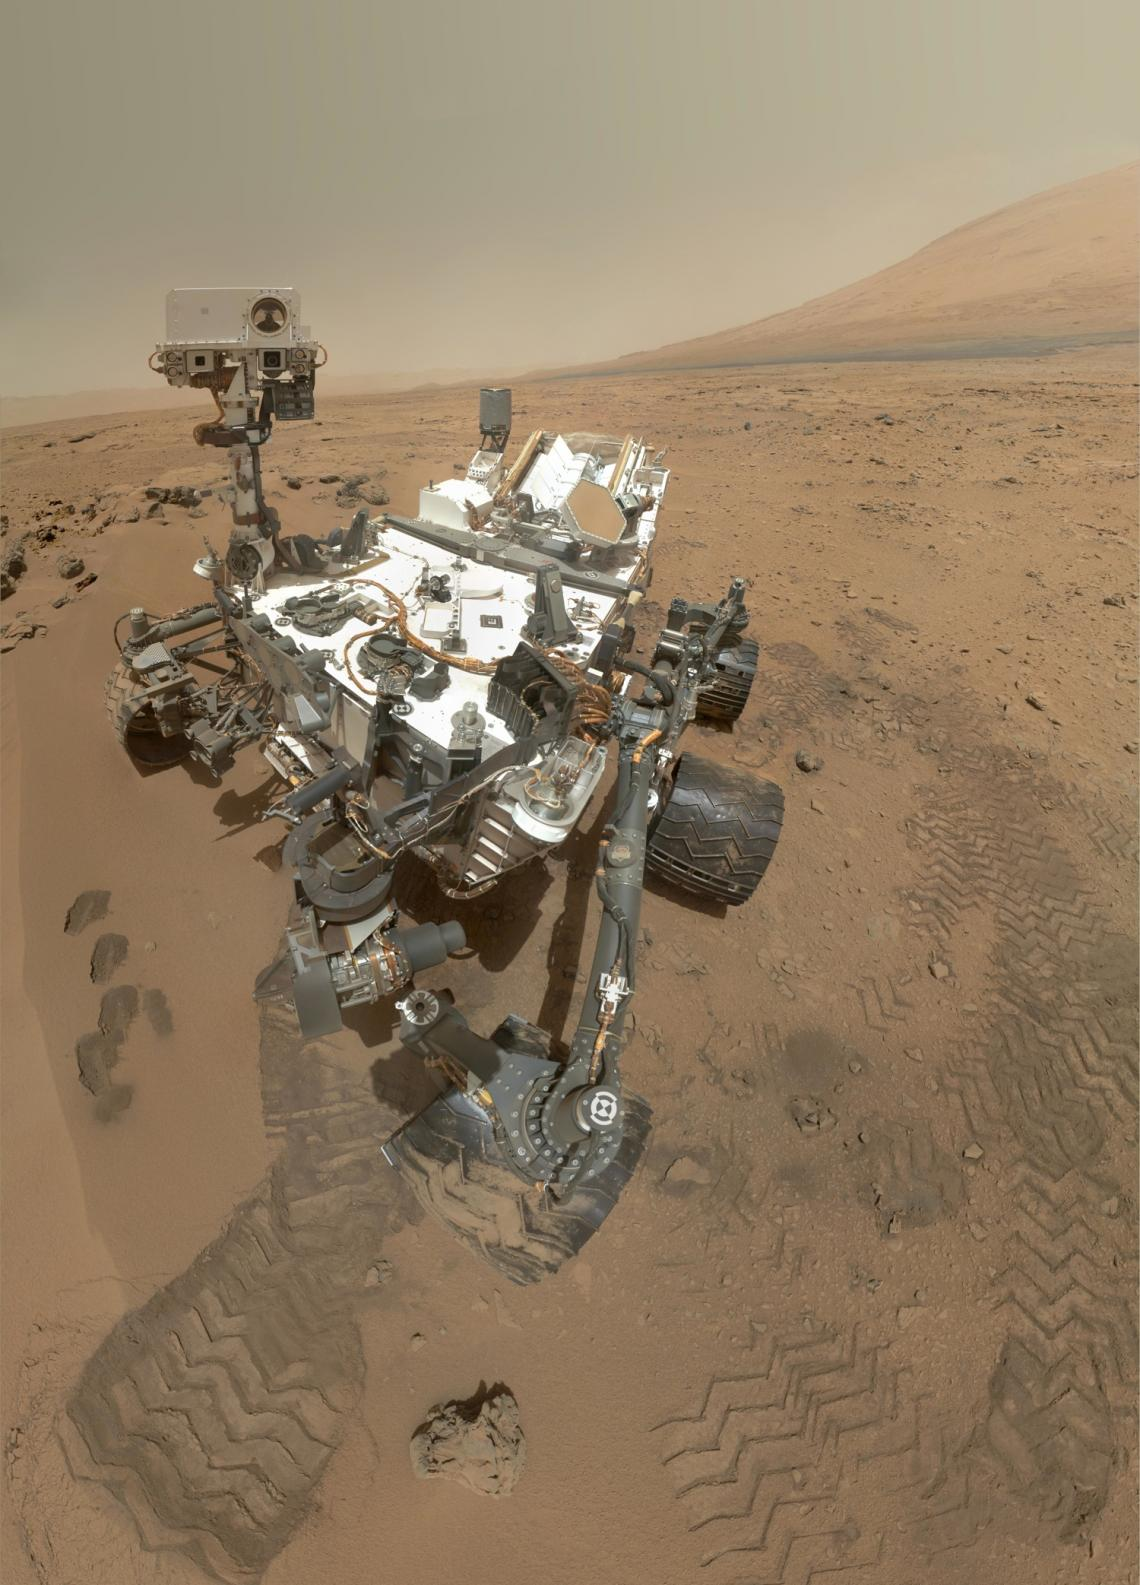 Mounted on a rover like NASA's Curiosity, the Astrobiological Imager could someday help identify promising spots to search for traces of life. Unlike existing imagers, the prototype developed by the UA-led team can photograph things close up and far away.